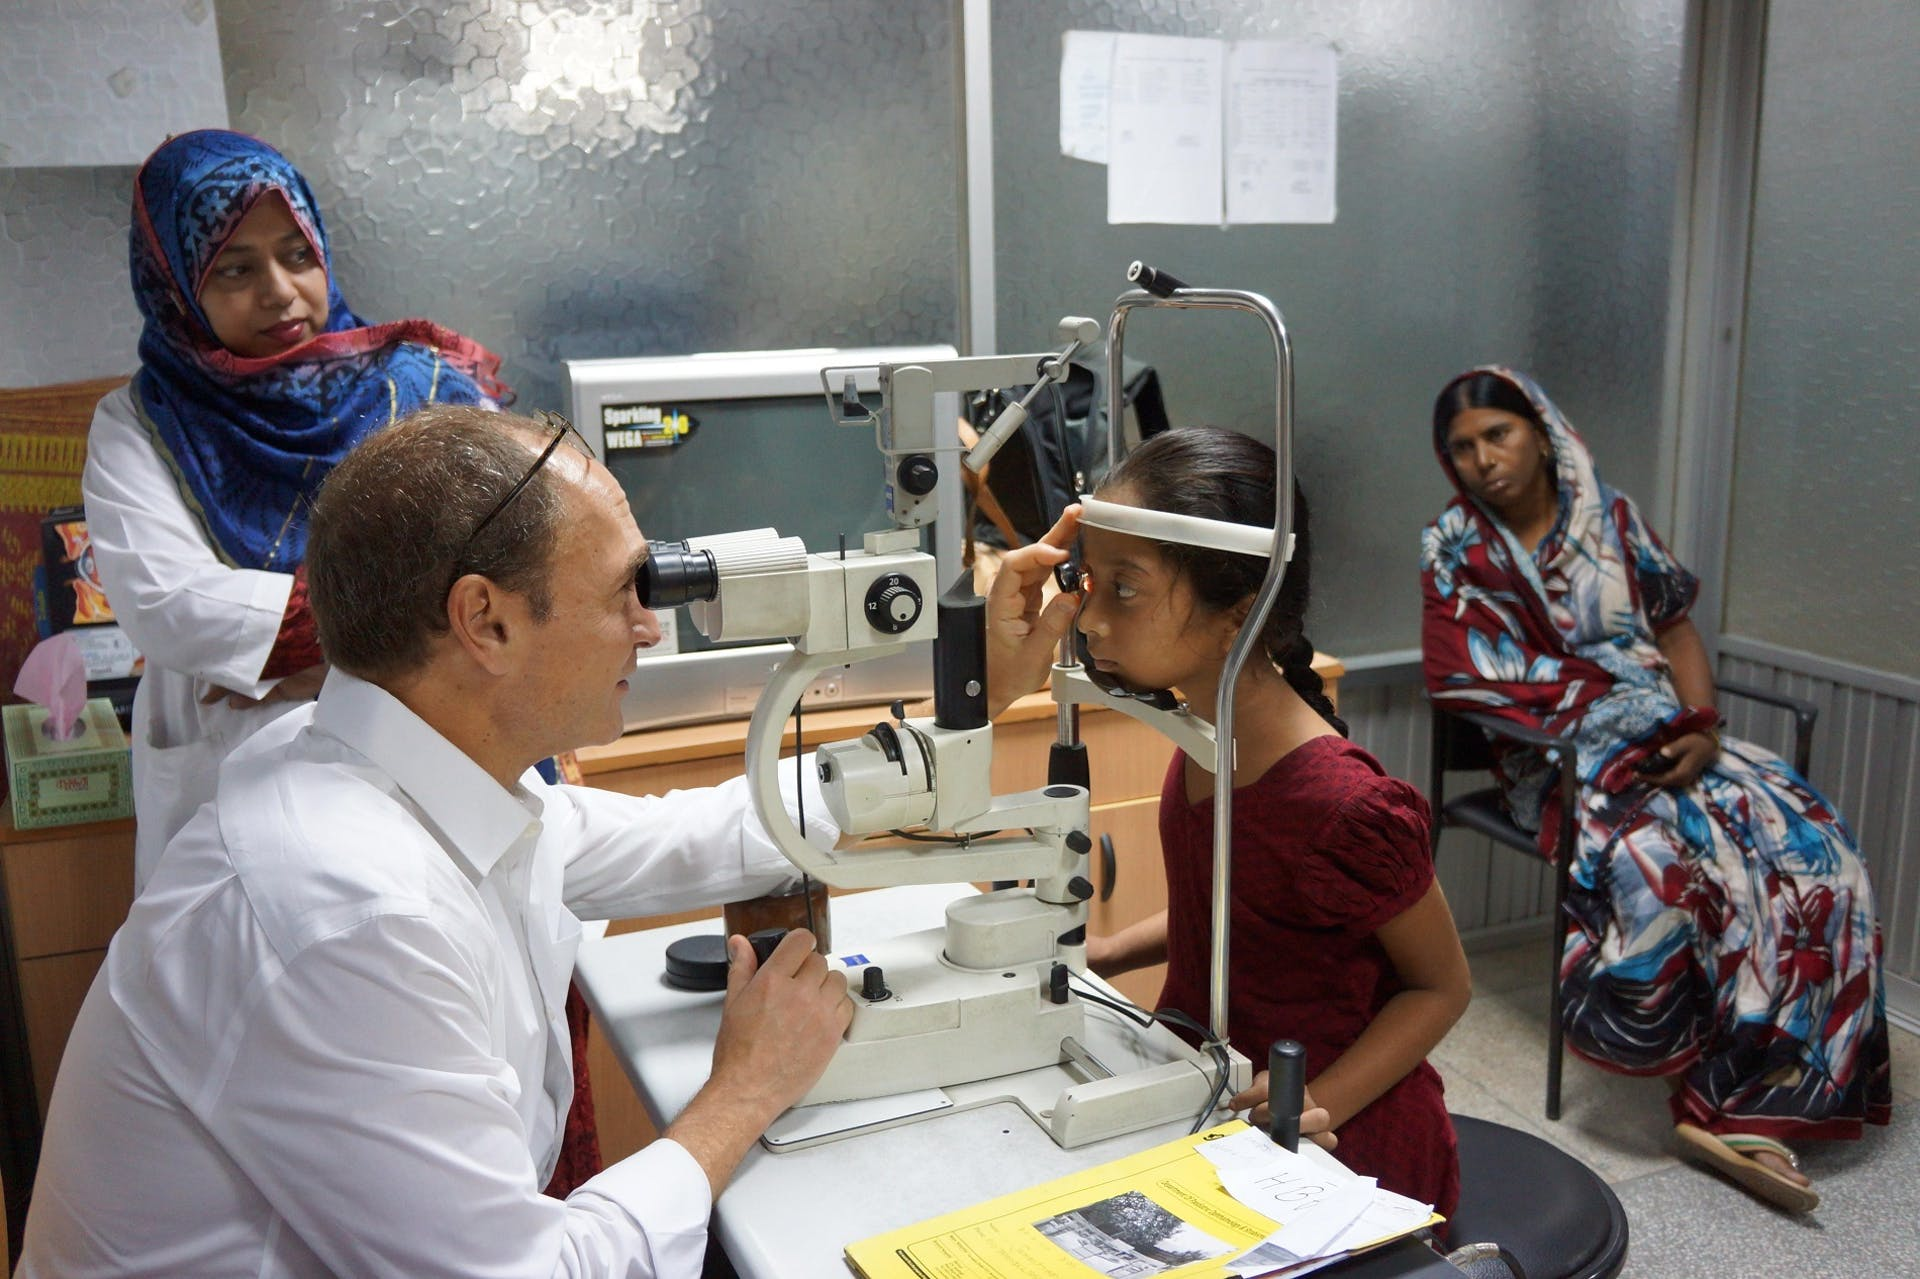 Dr. Peter Kertes screens a child's eyes to check whether they need urgent eye care